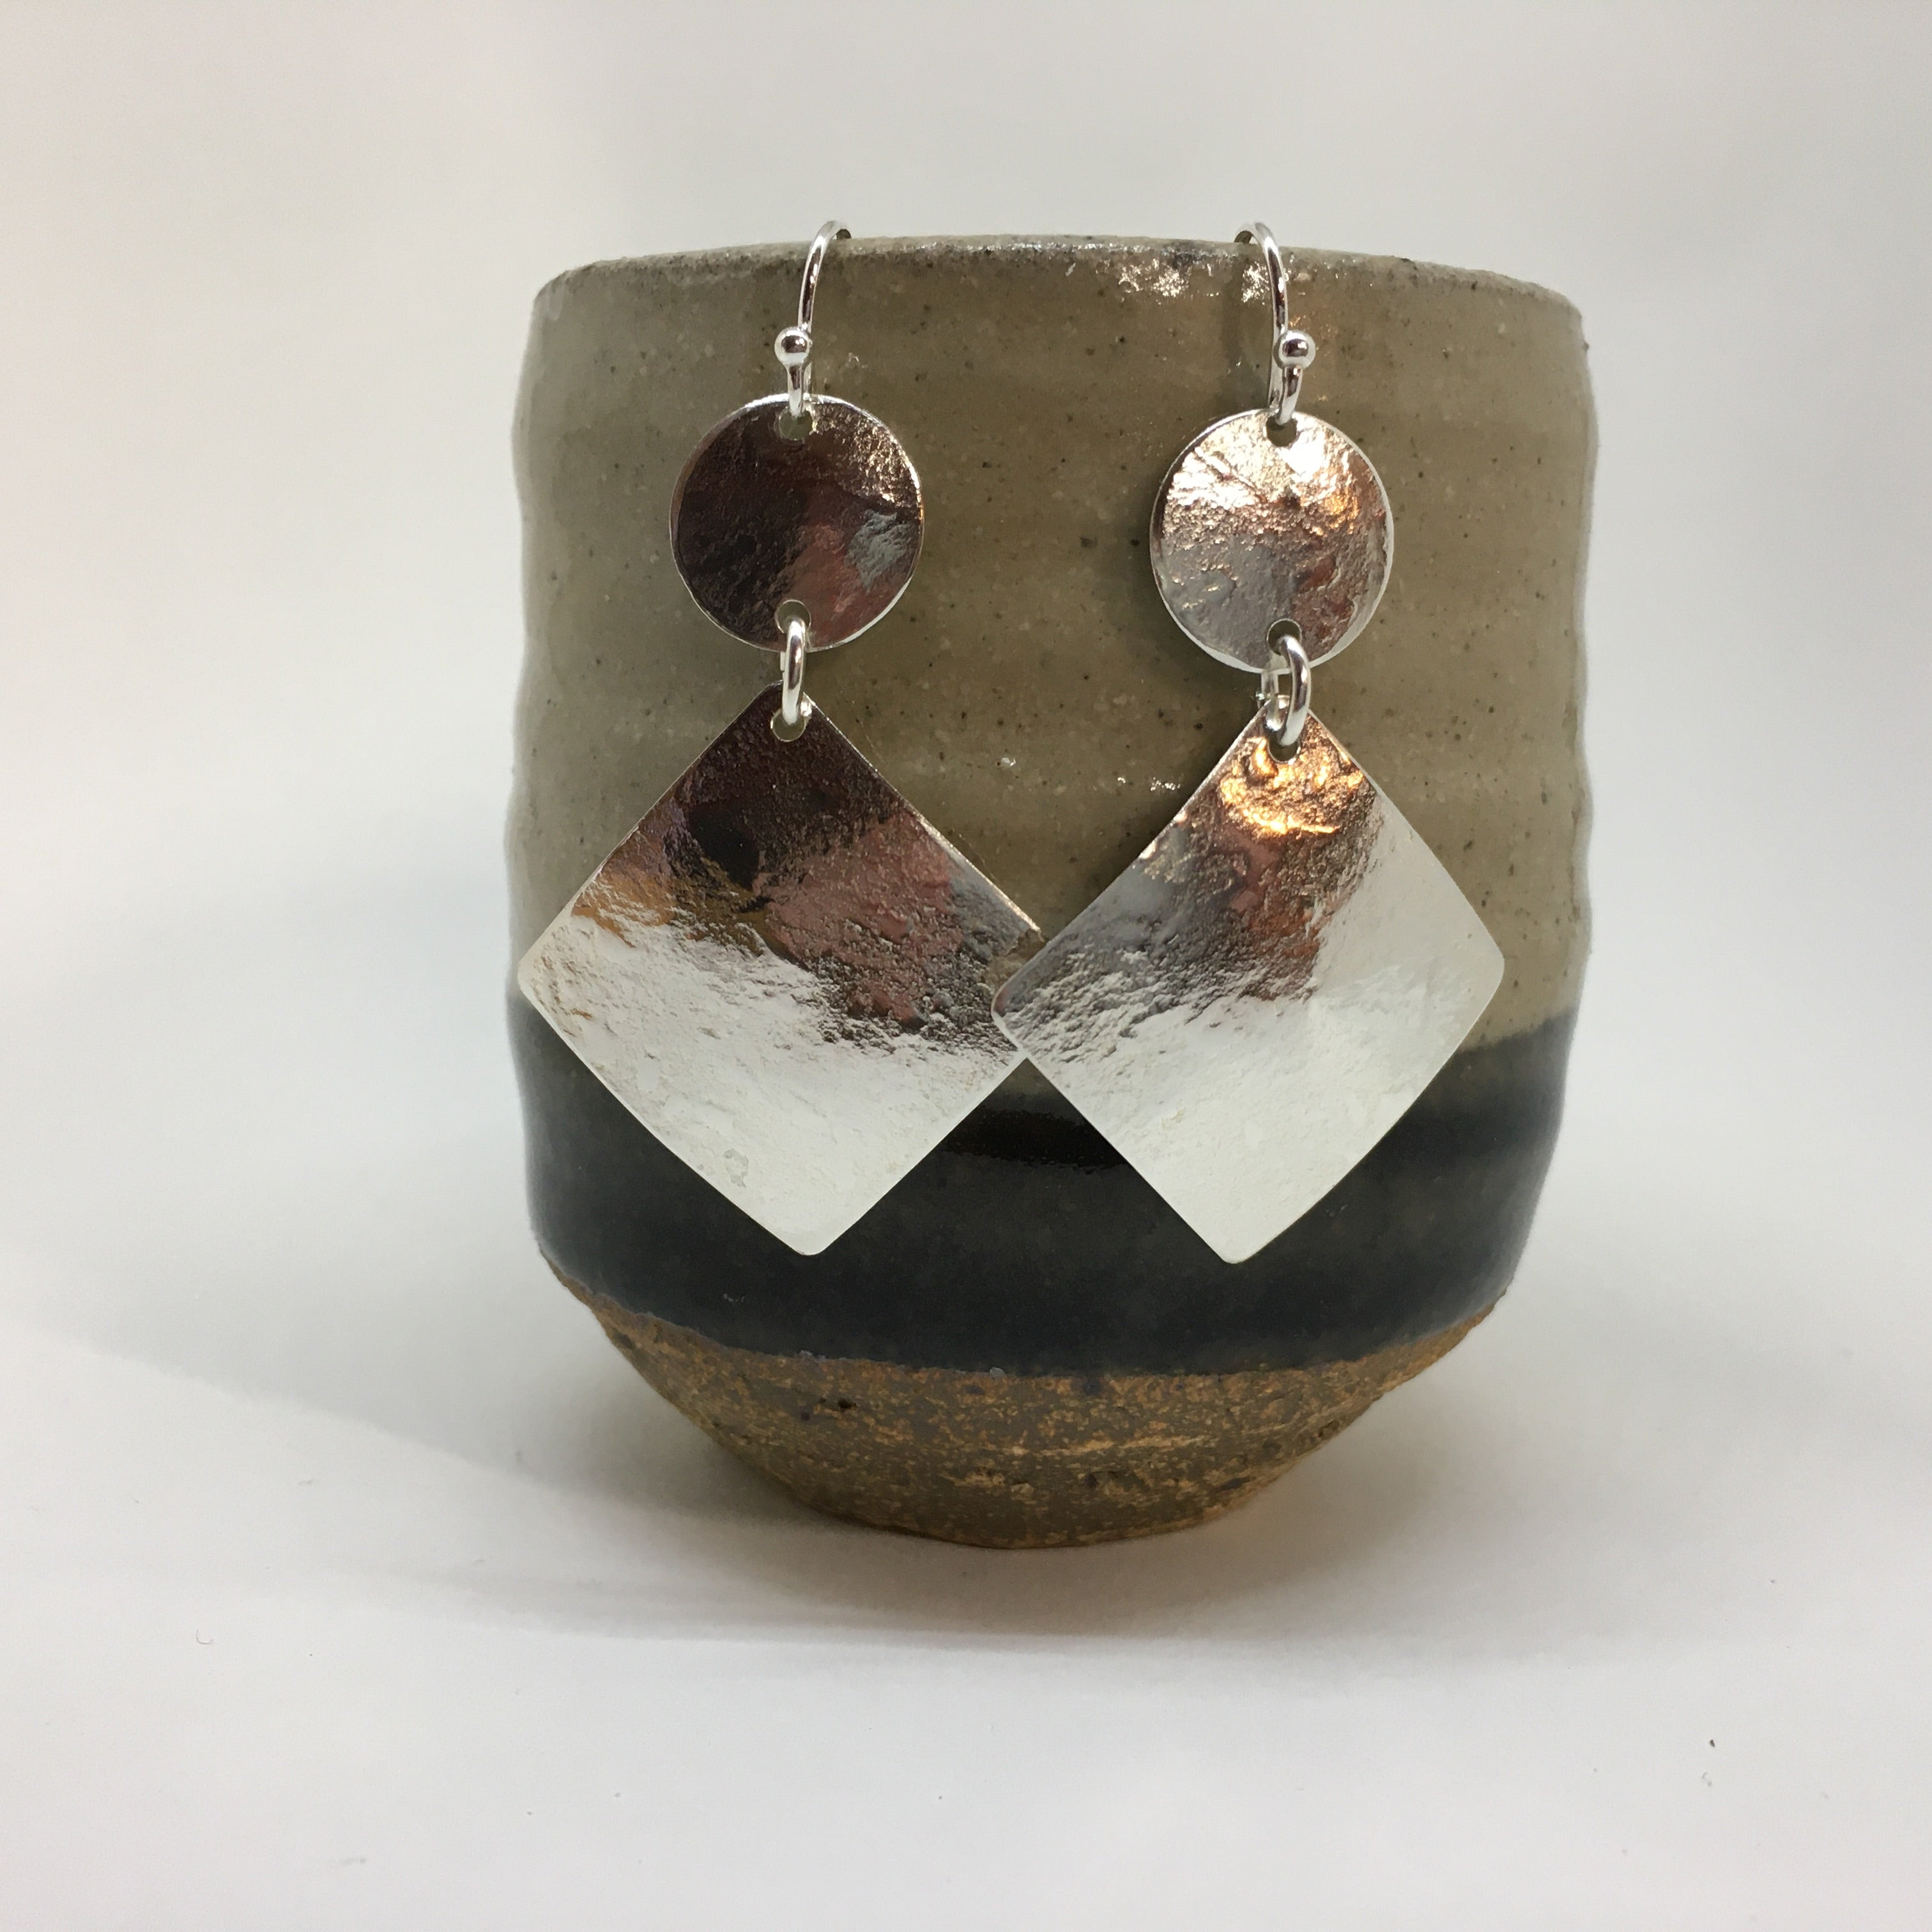 MEDIUM BOLD GEO EARRINGS